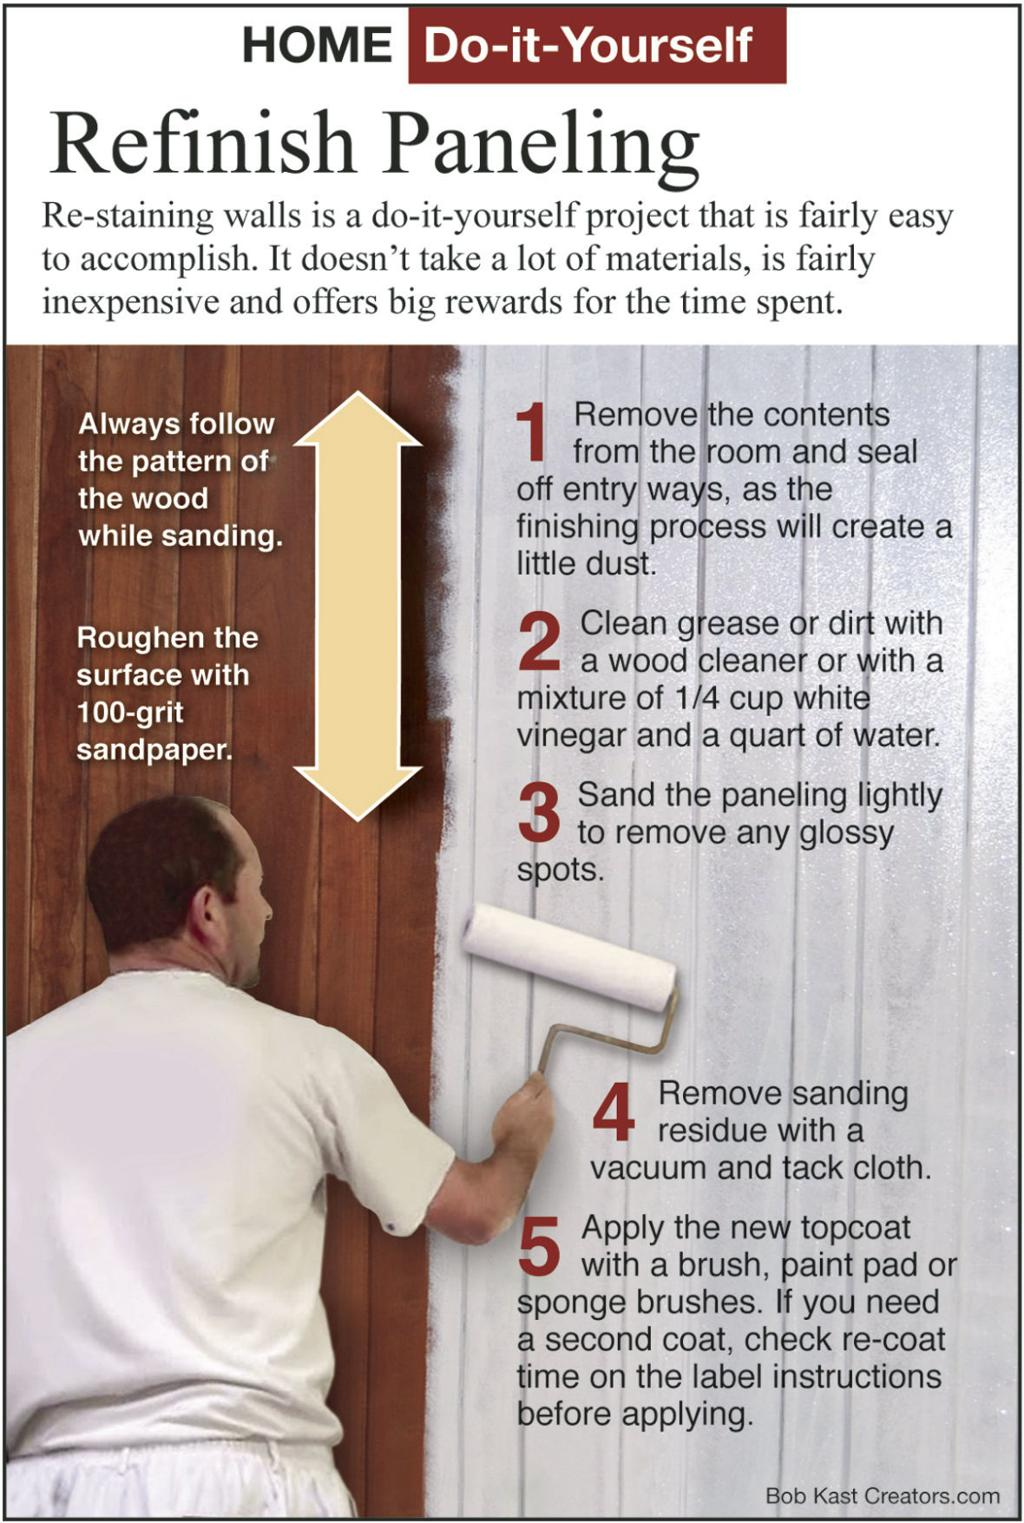 Install Drywall Over Old Paneling Siouxland Homes Siouxcityjournal Com